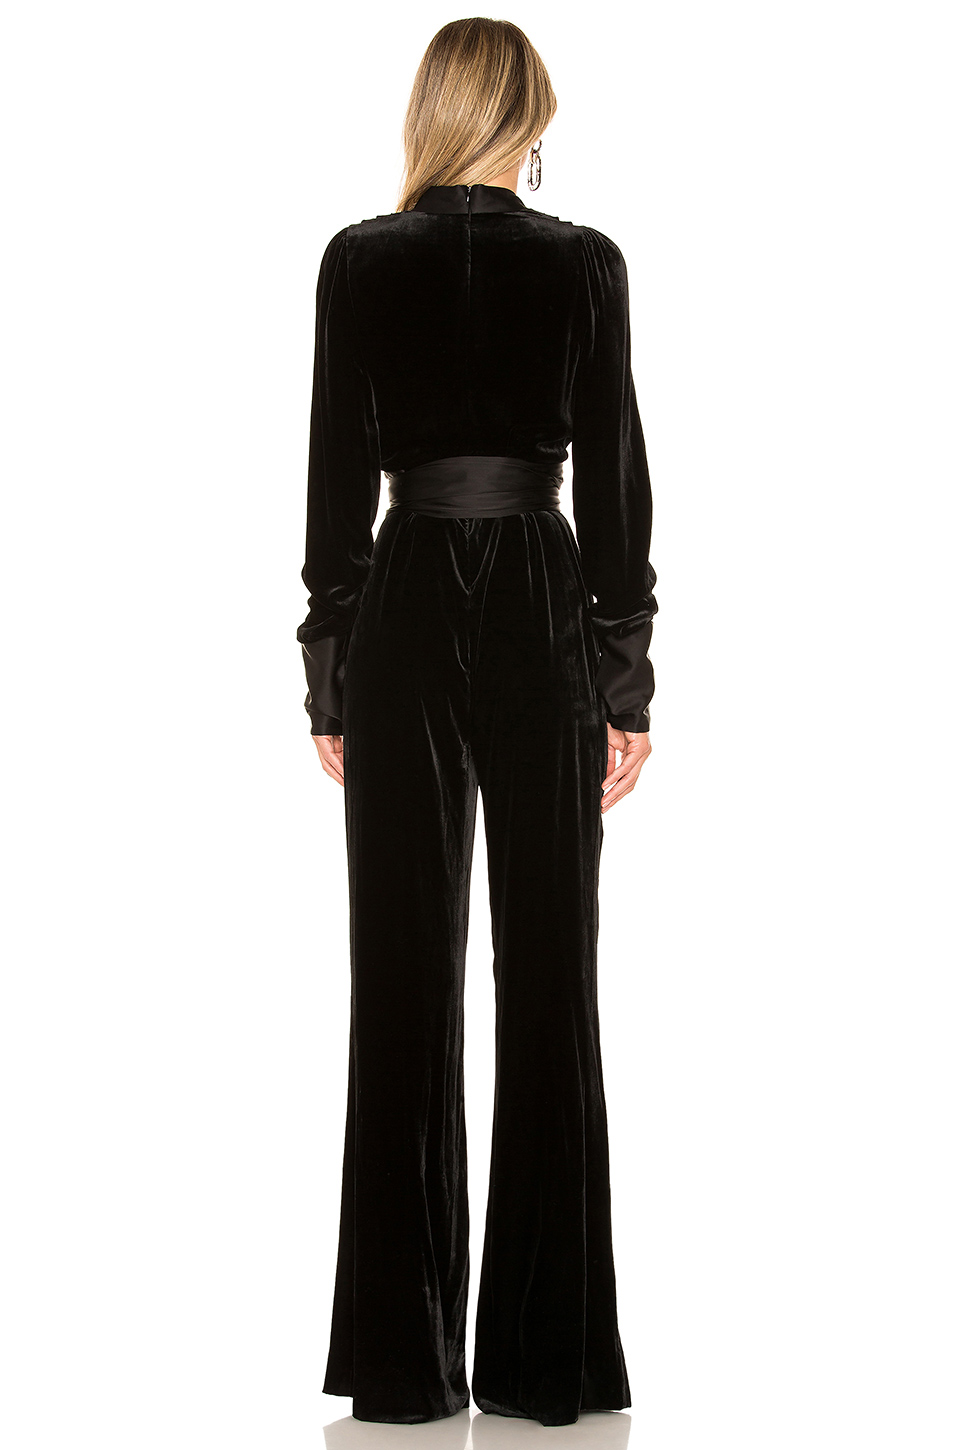 04711ced4c65 Buy Original Diane von Furstenberg Sash Jumpsuit at Indonesia